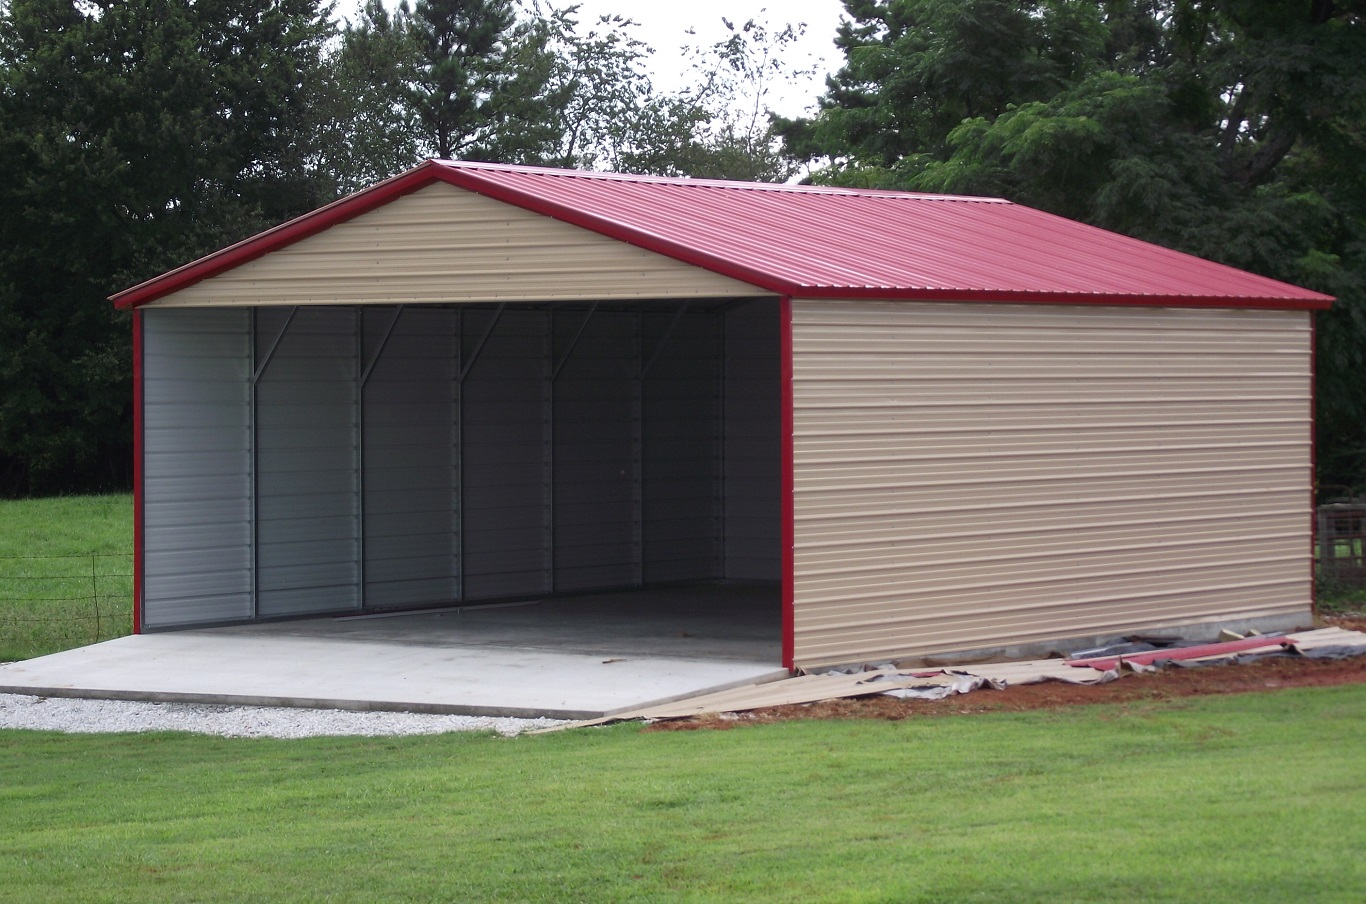 cheap metal building kits for sale in alabama